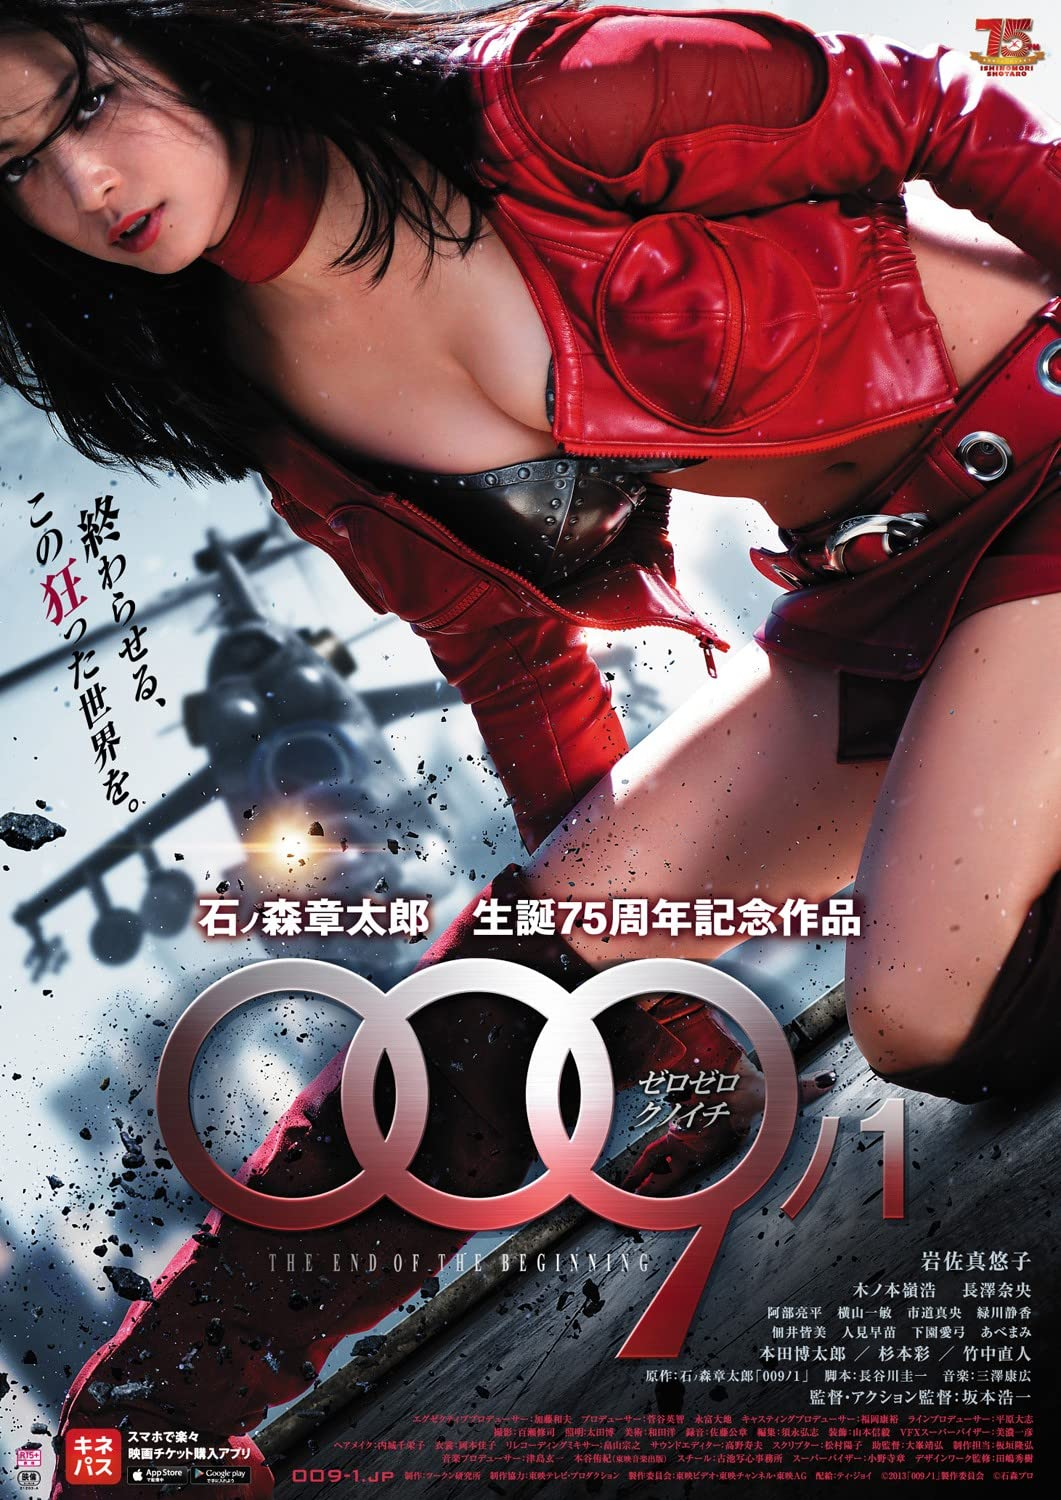 009-1: The End of the Beginning Film (2013) · Trailer